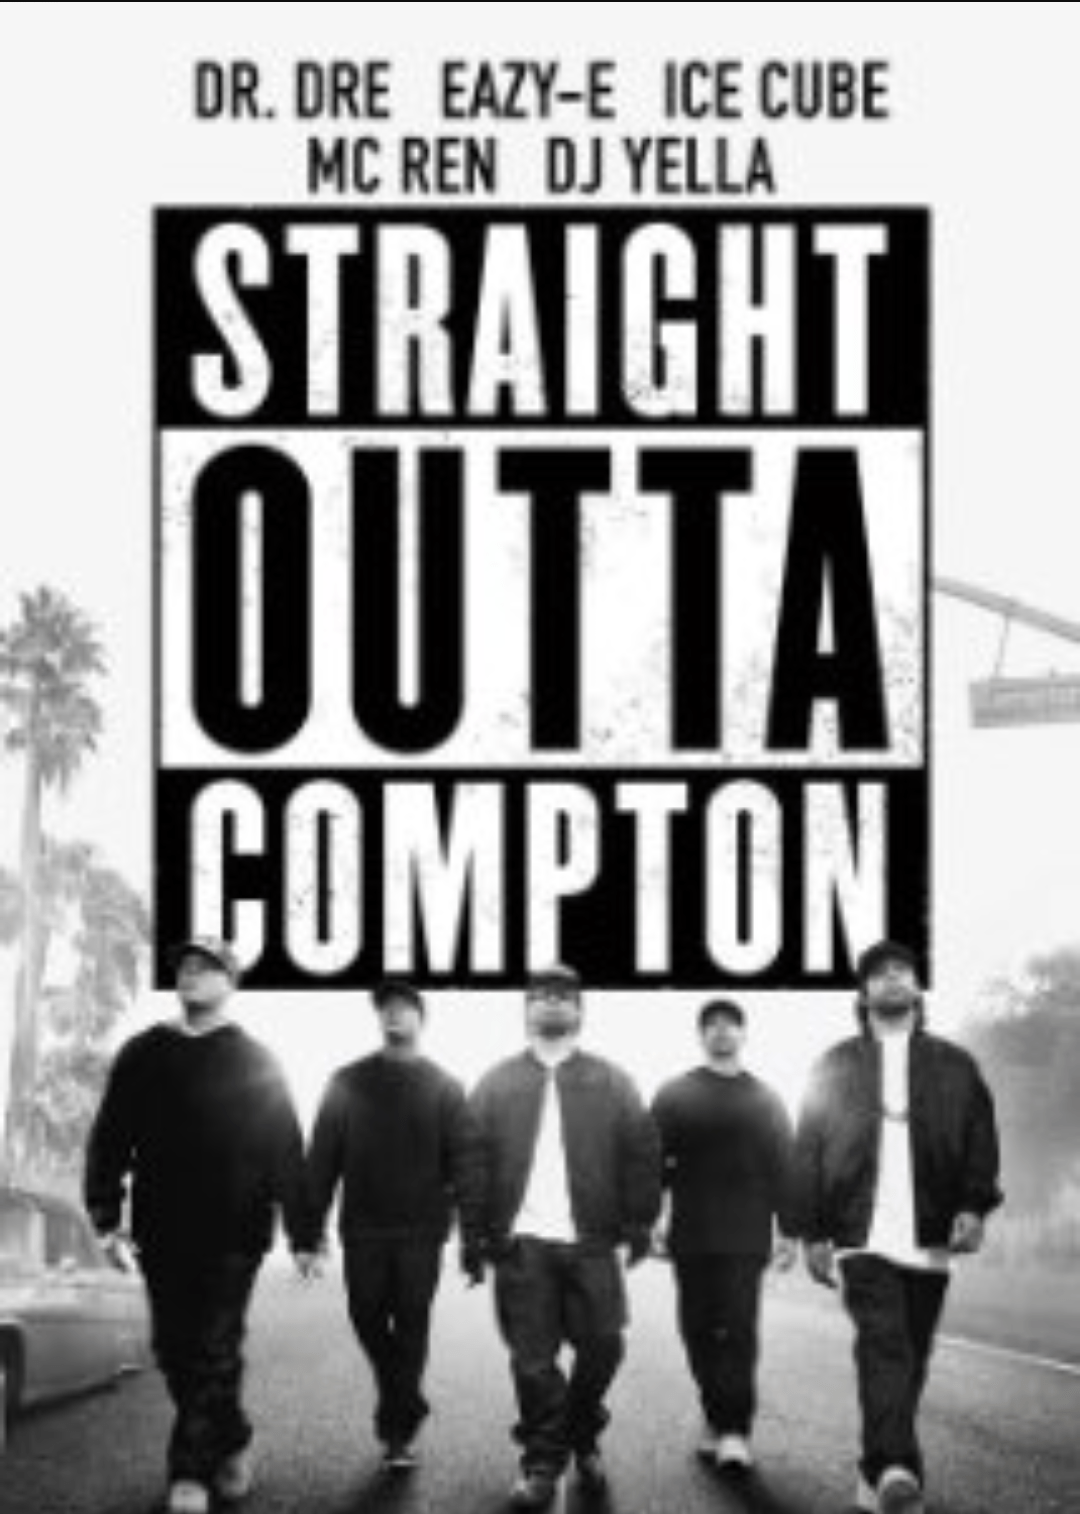 [N.W.A Film Shines Light on America's Past and Current Issues] Straight Outta Compton in Review